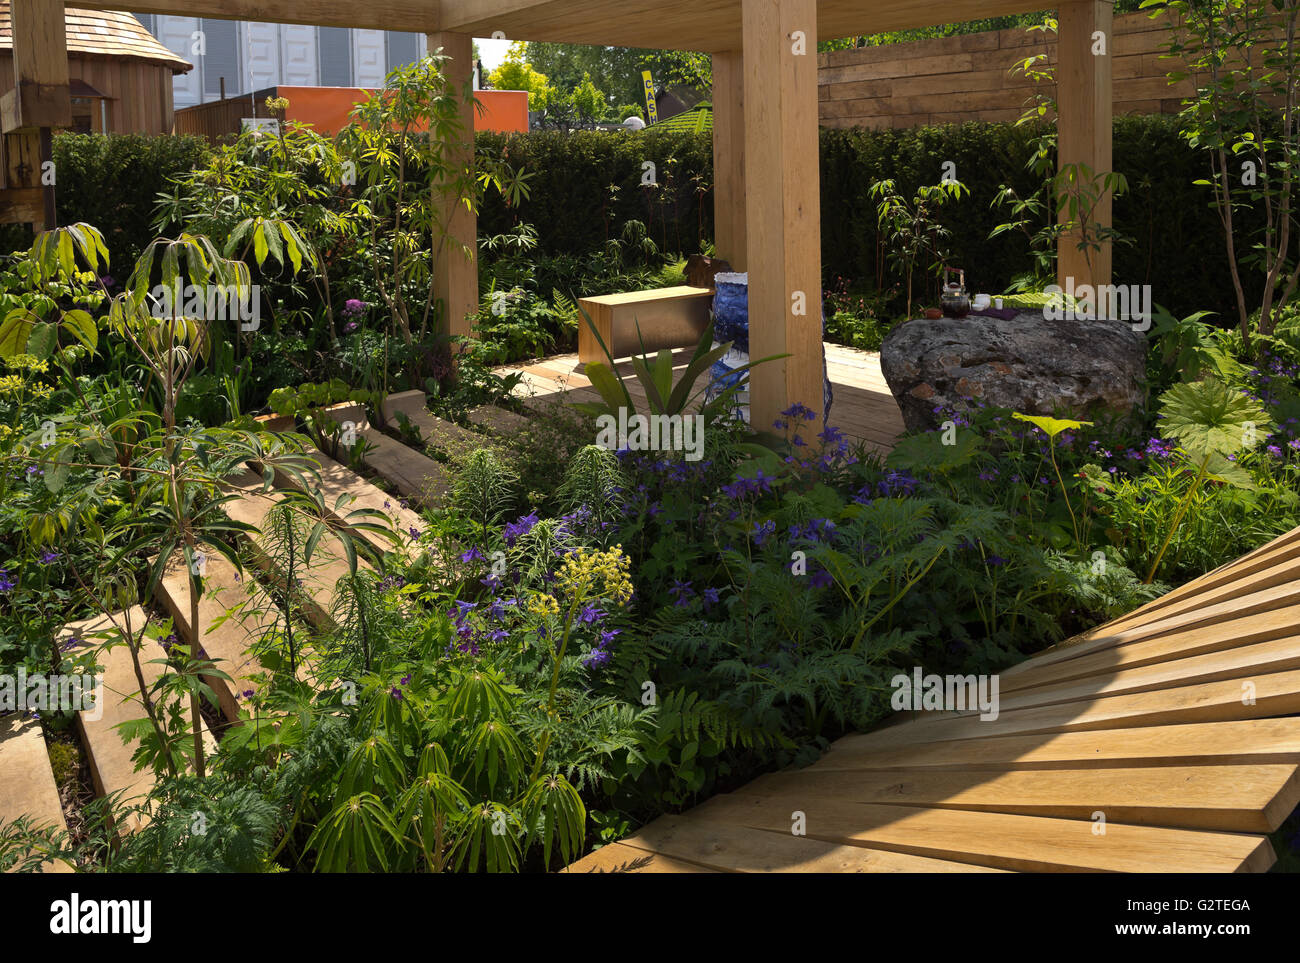 Rhs chelsea flower show 2016 the garden of potential for Chelsea flower show garden designs